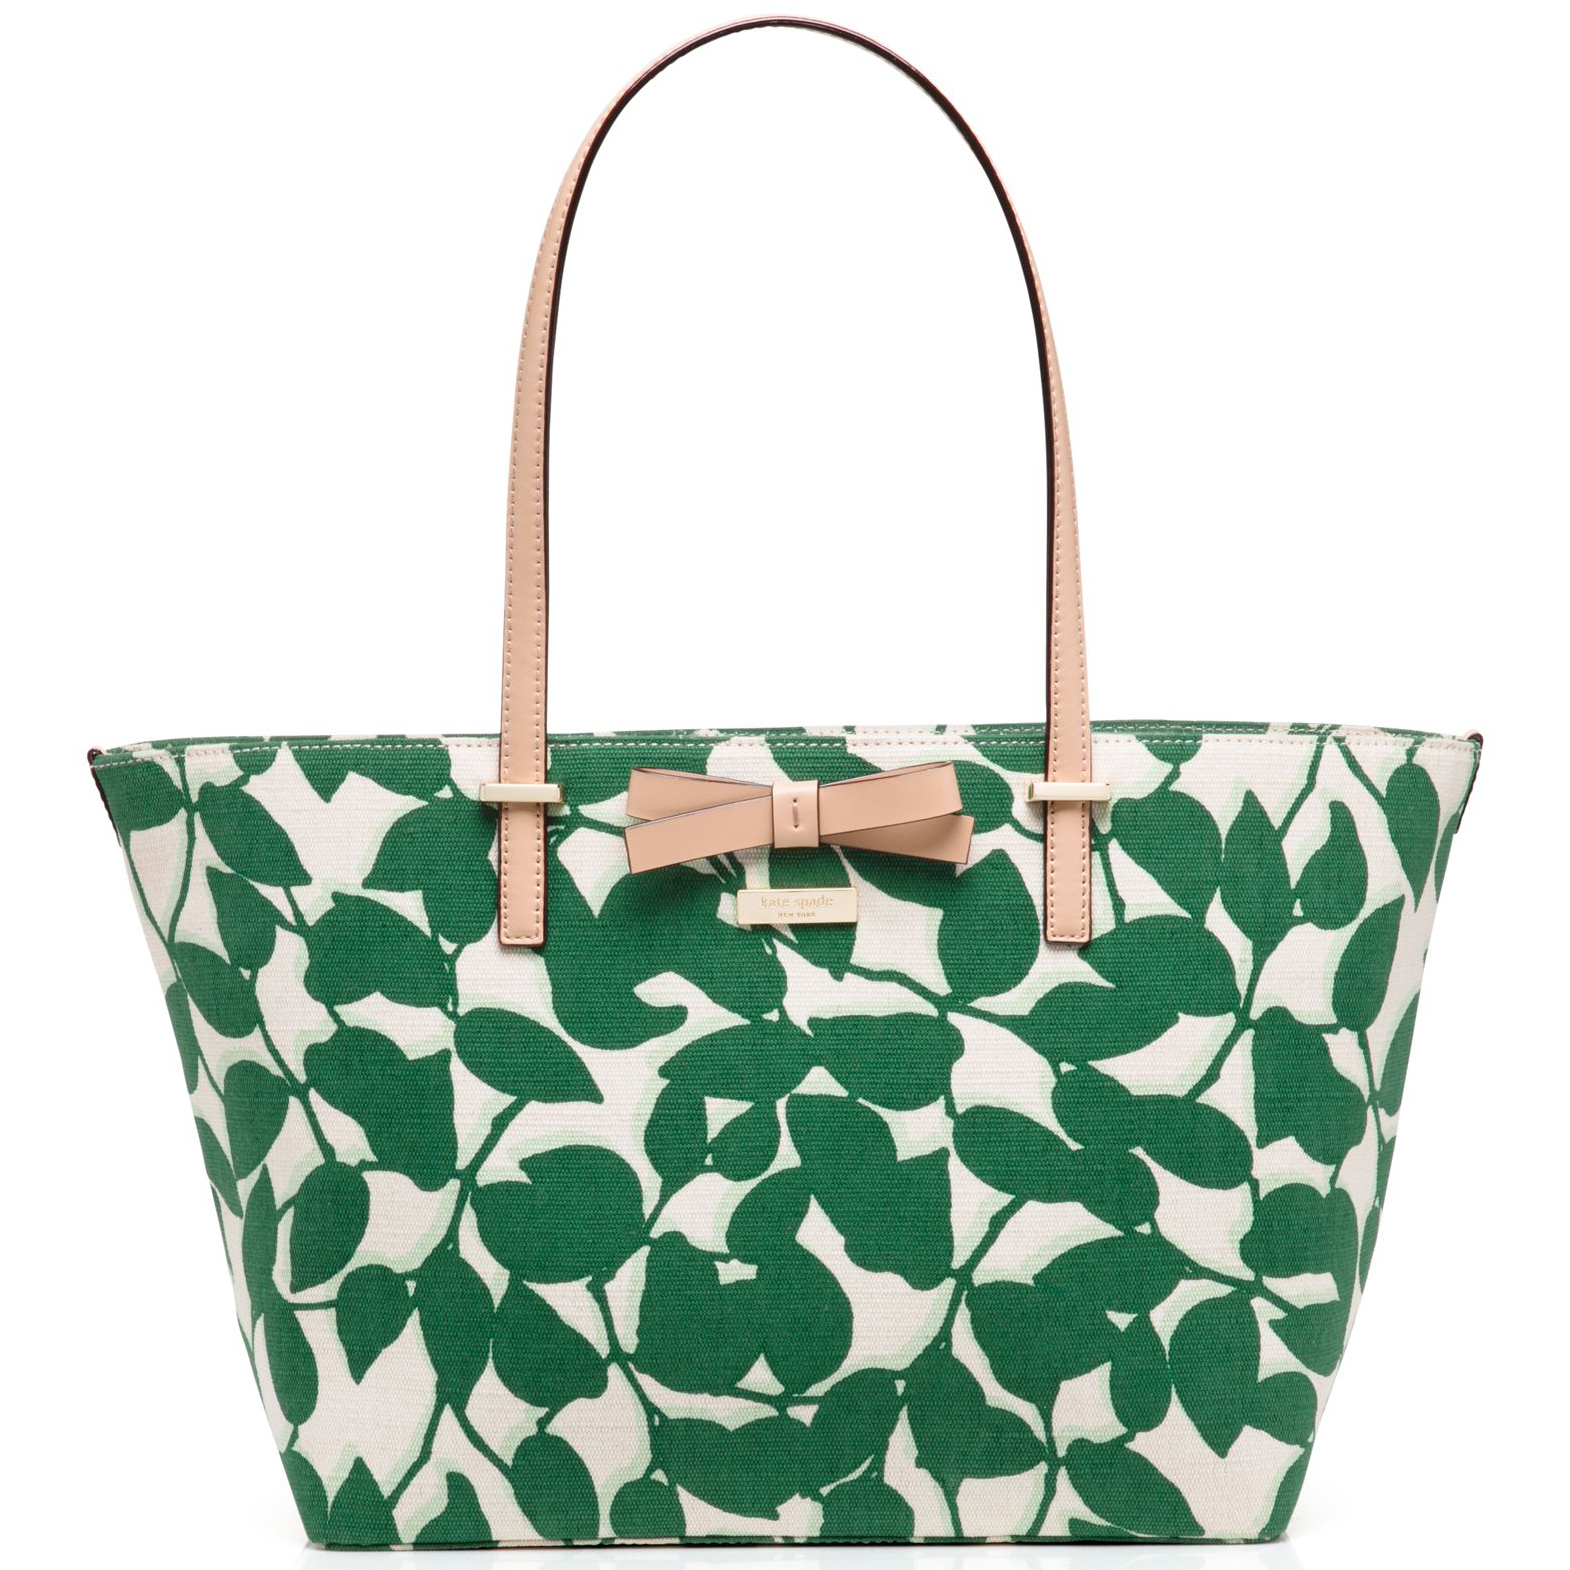 Kate Spade South Poplar Street Francis Tote Handbag Lucky Green Garden Leaves # WKRU3145